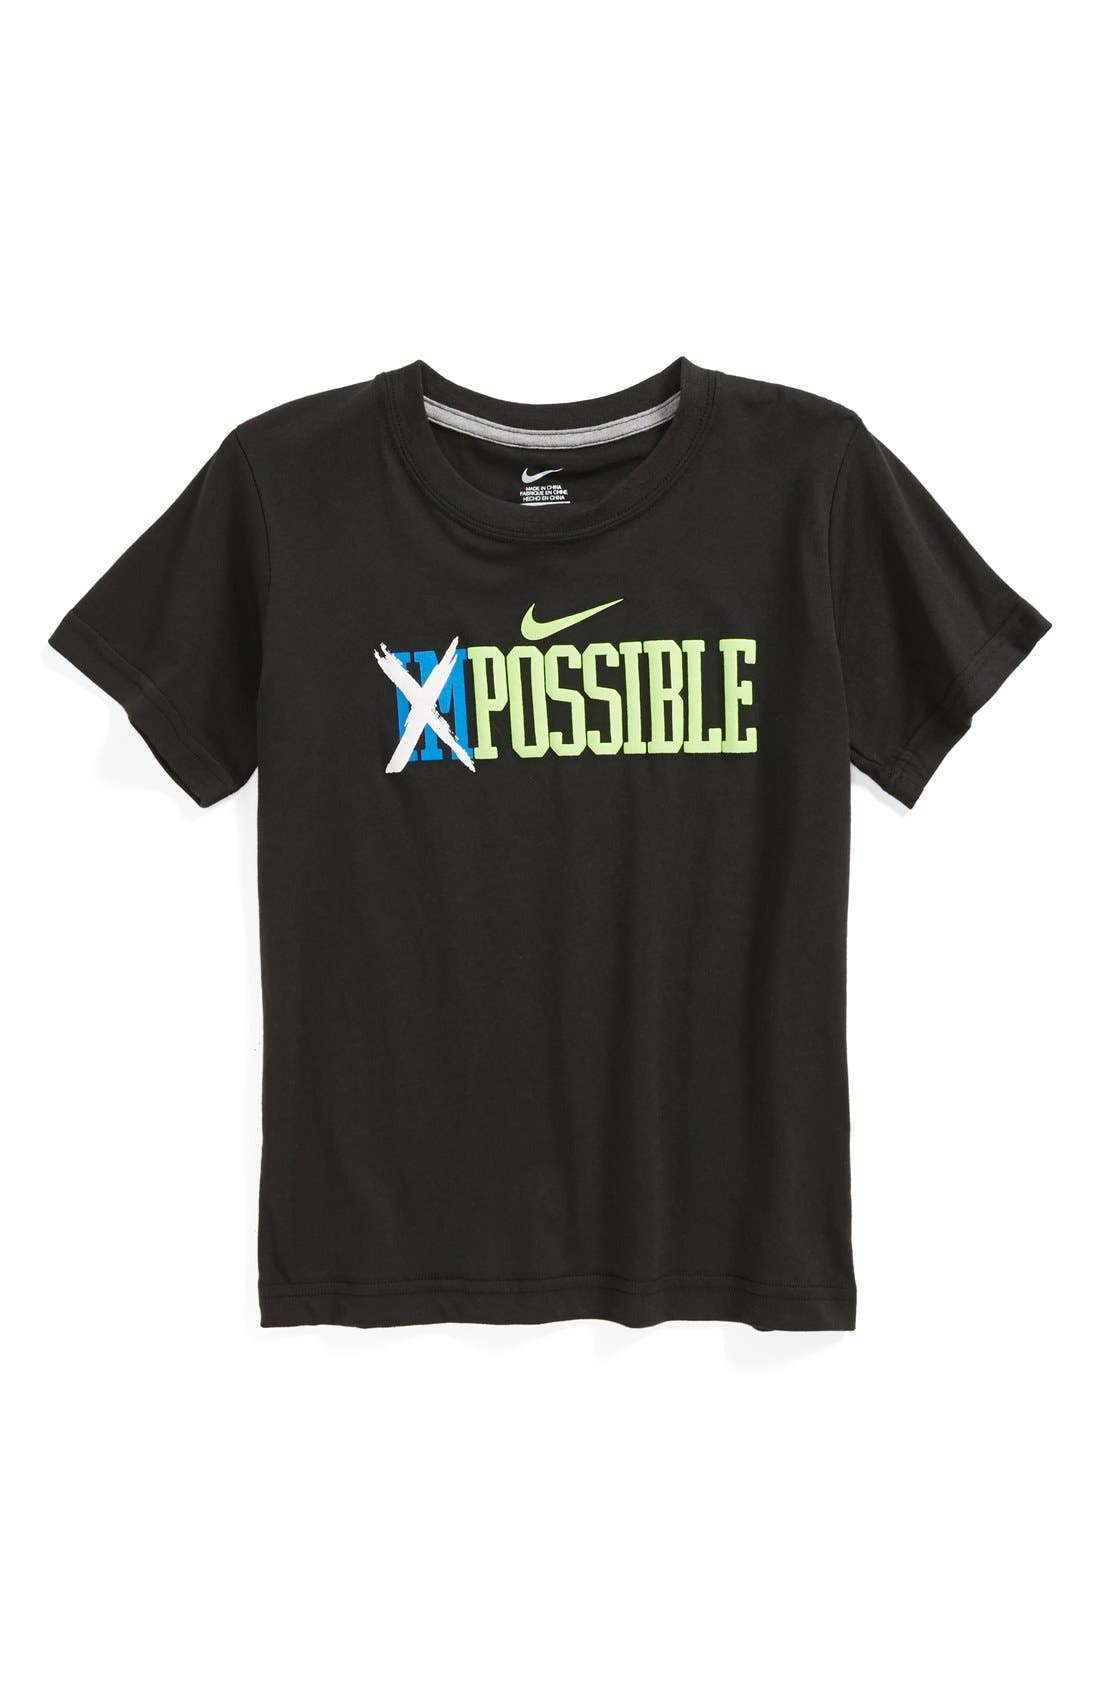 Main Image - Nike 'Possible' T-Shirt (Little Boys)